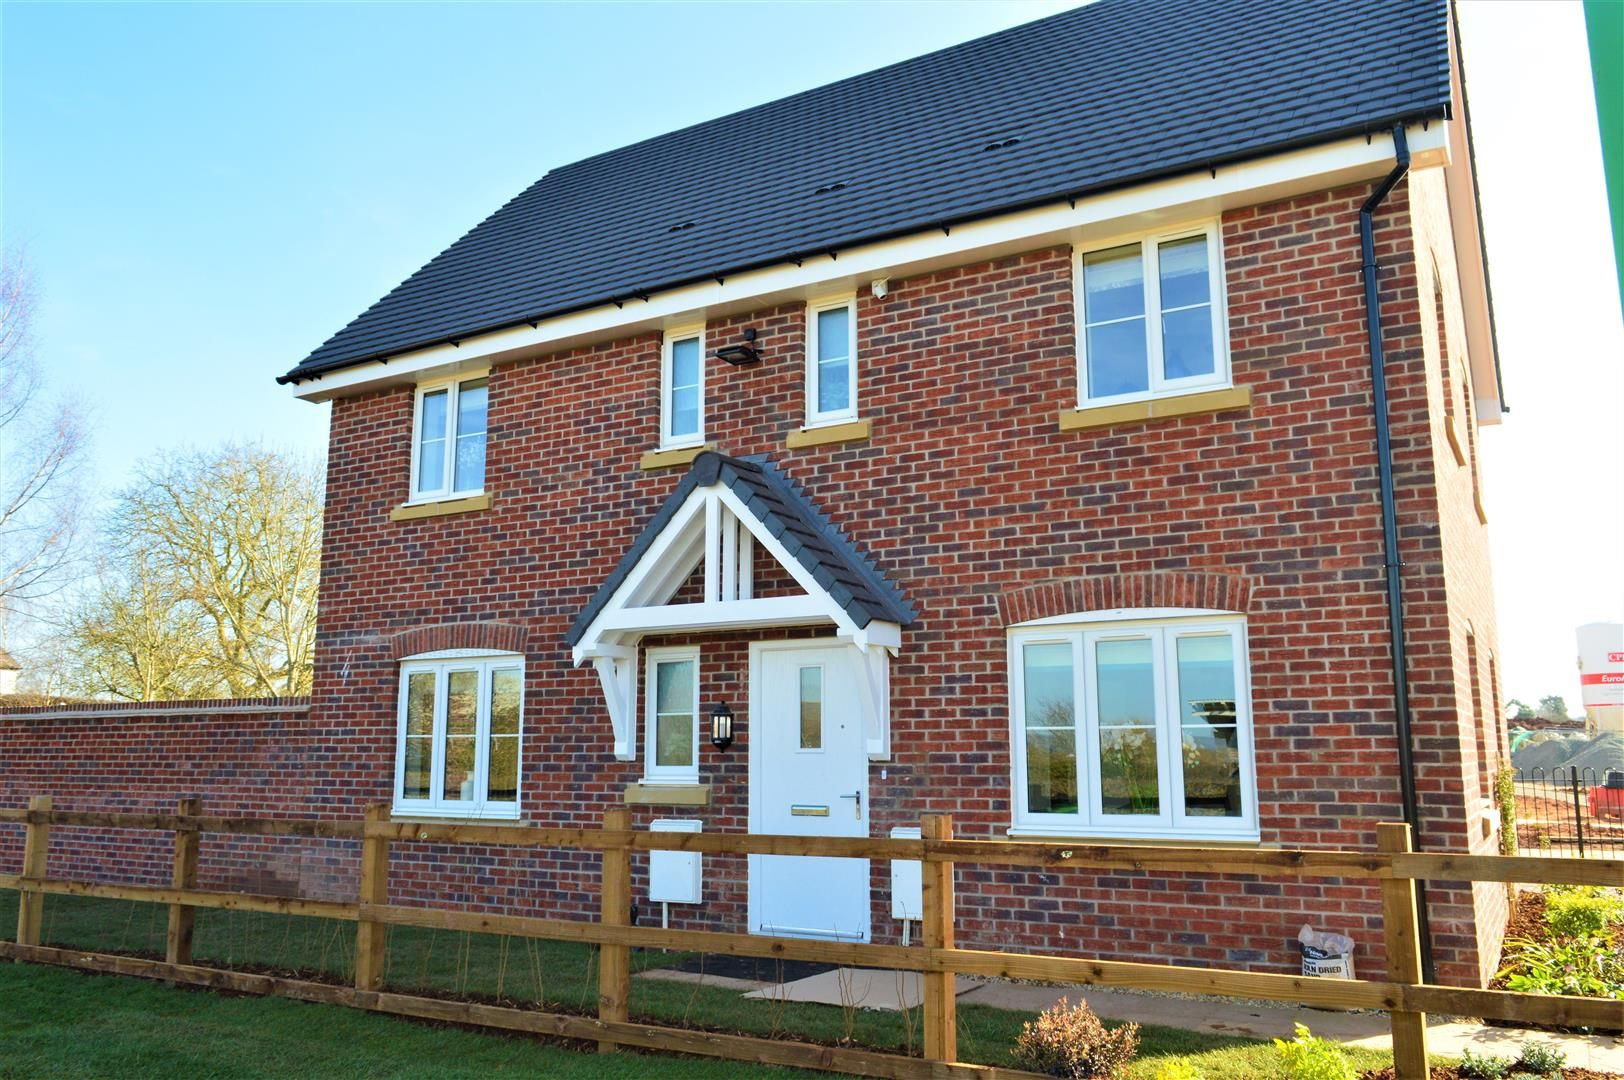 3 bed detached for sale in Kingstone, HR2